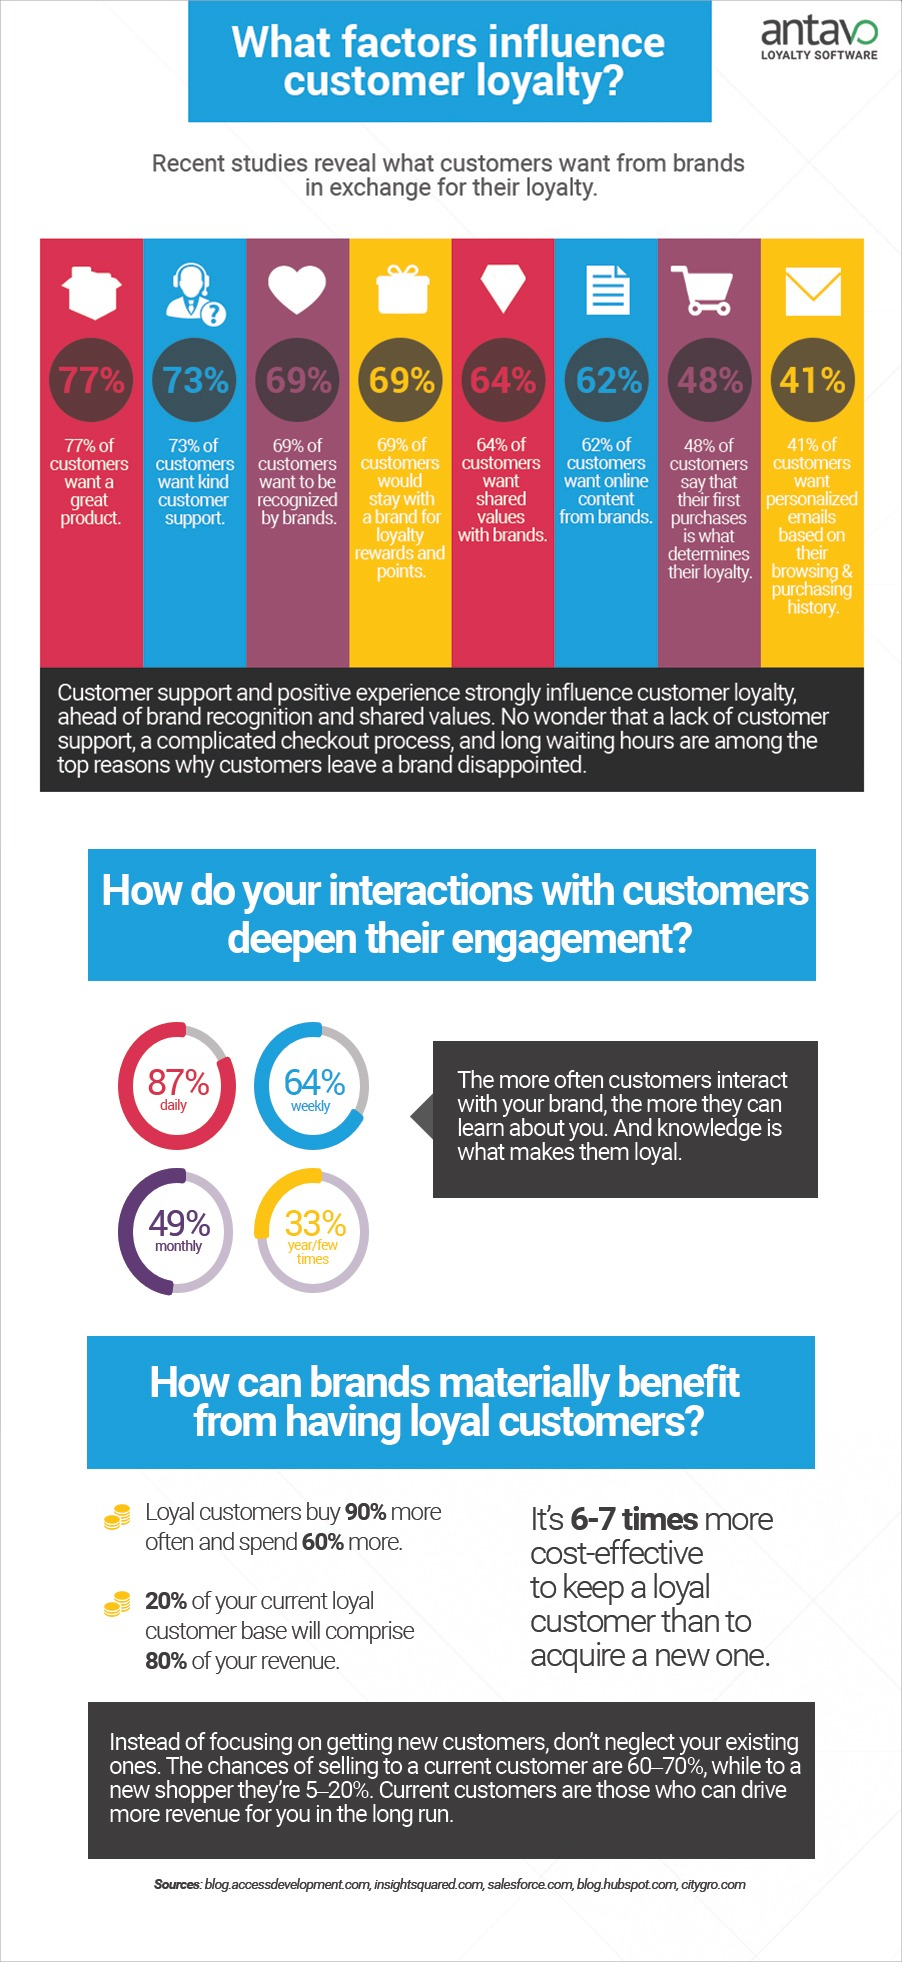 What factors influence customer loyalty